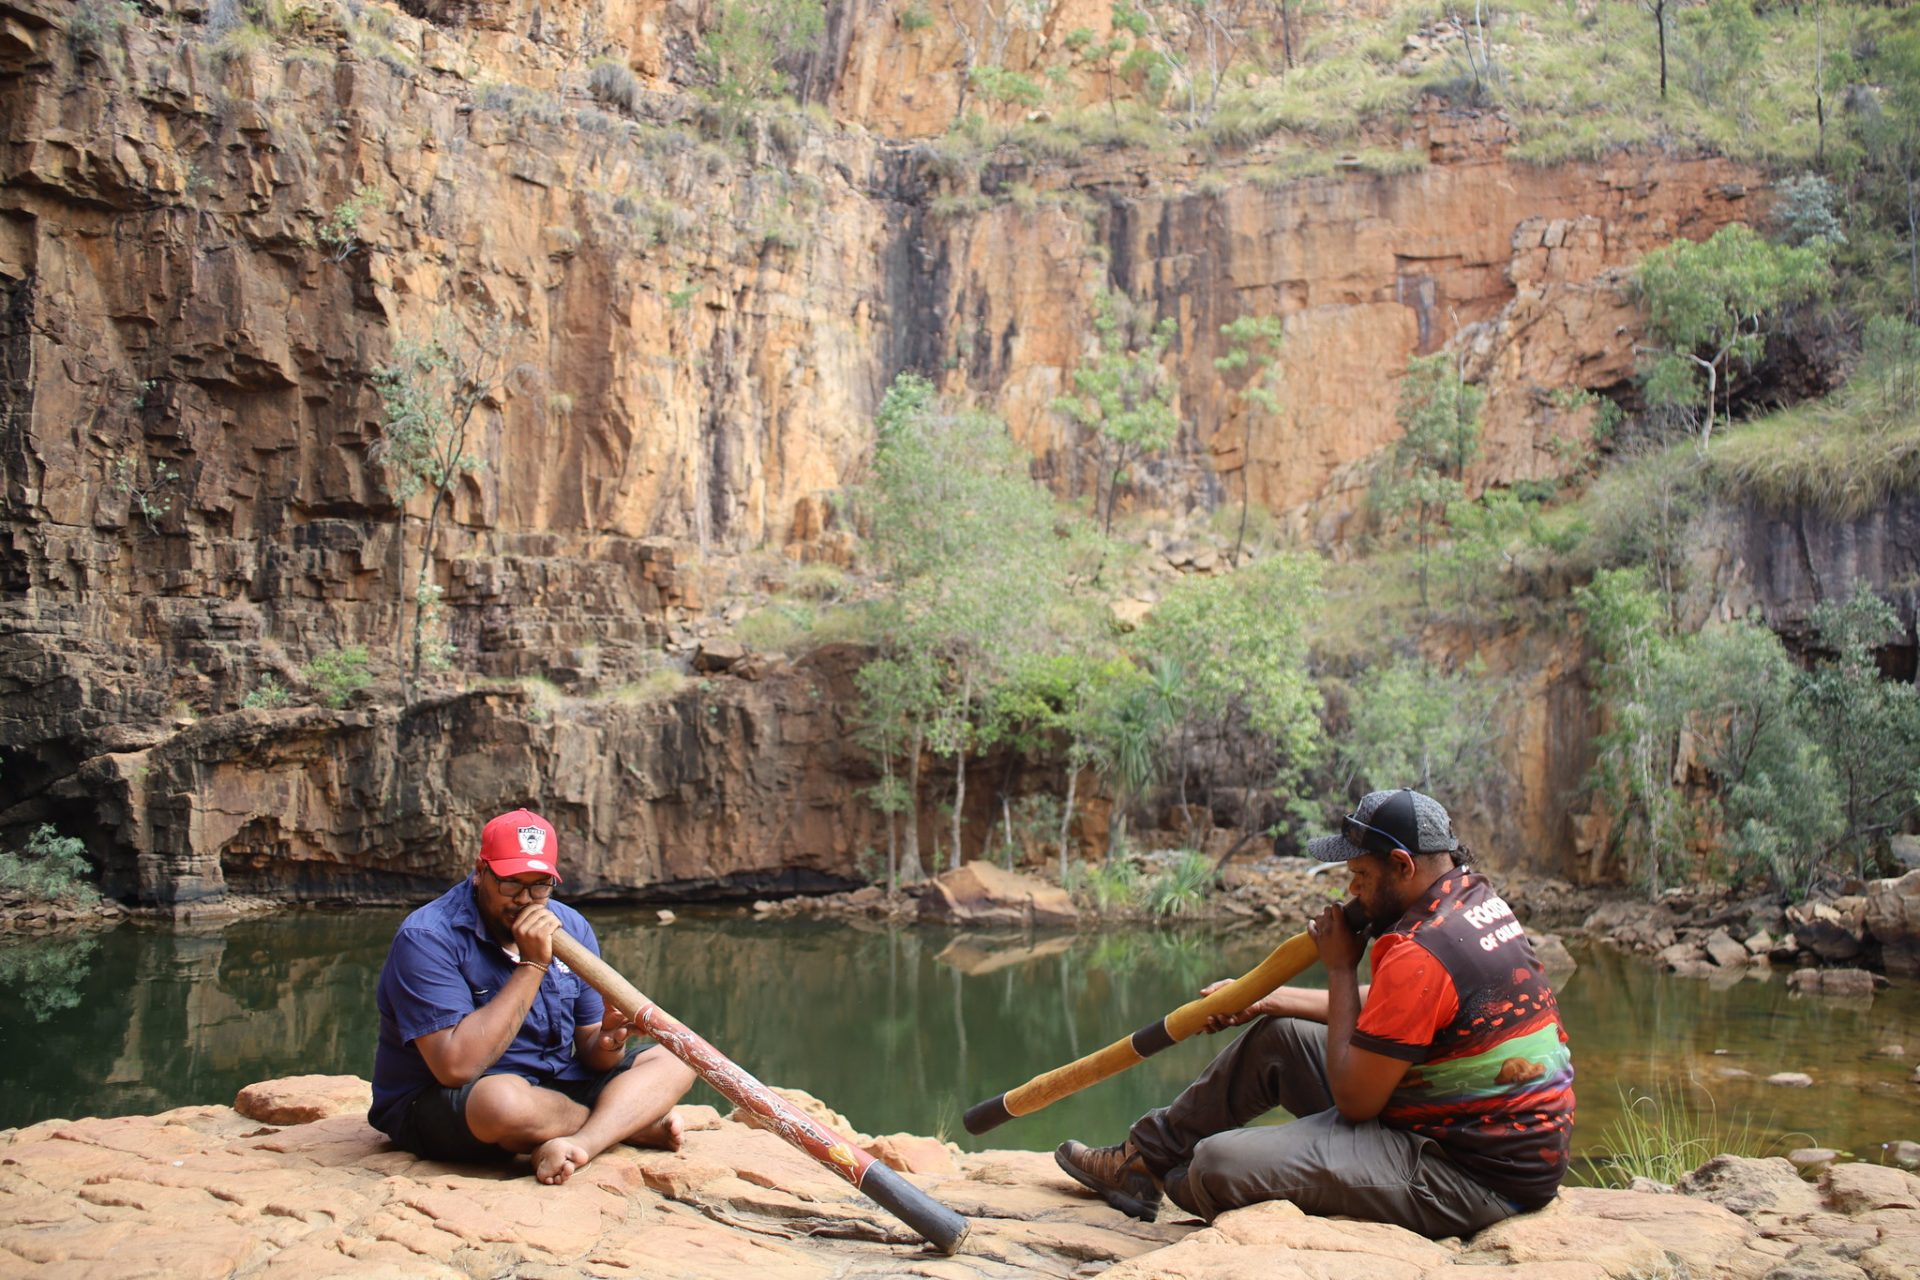 Learning skills from the indigenous locals at Katherine Gorge